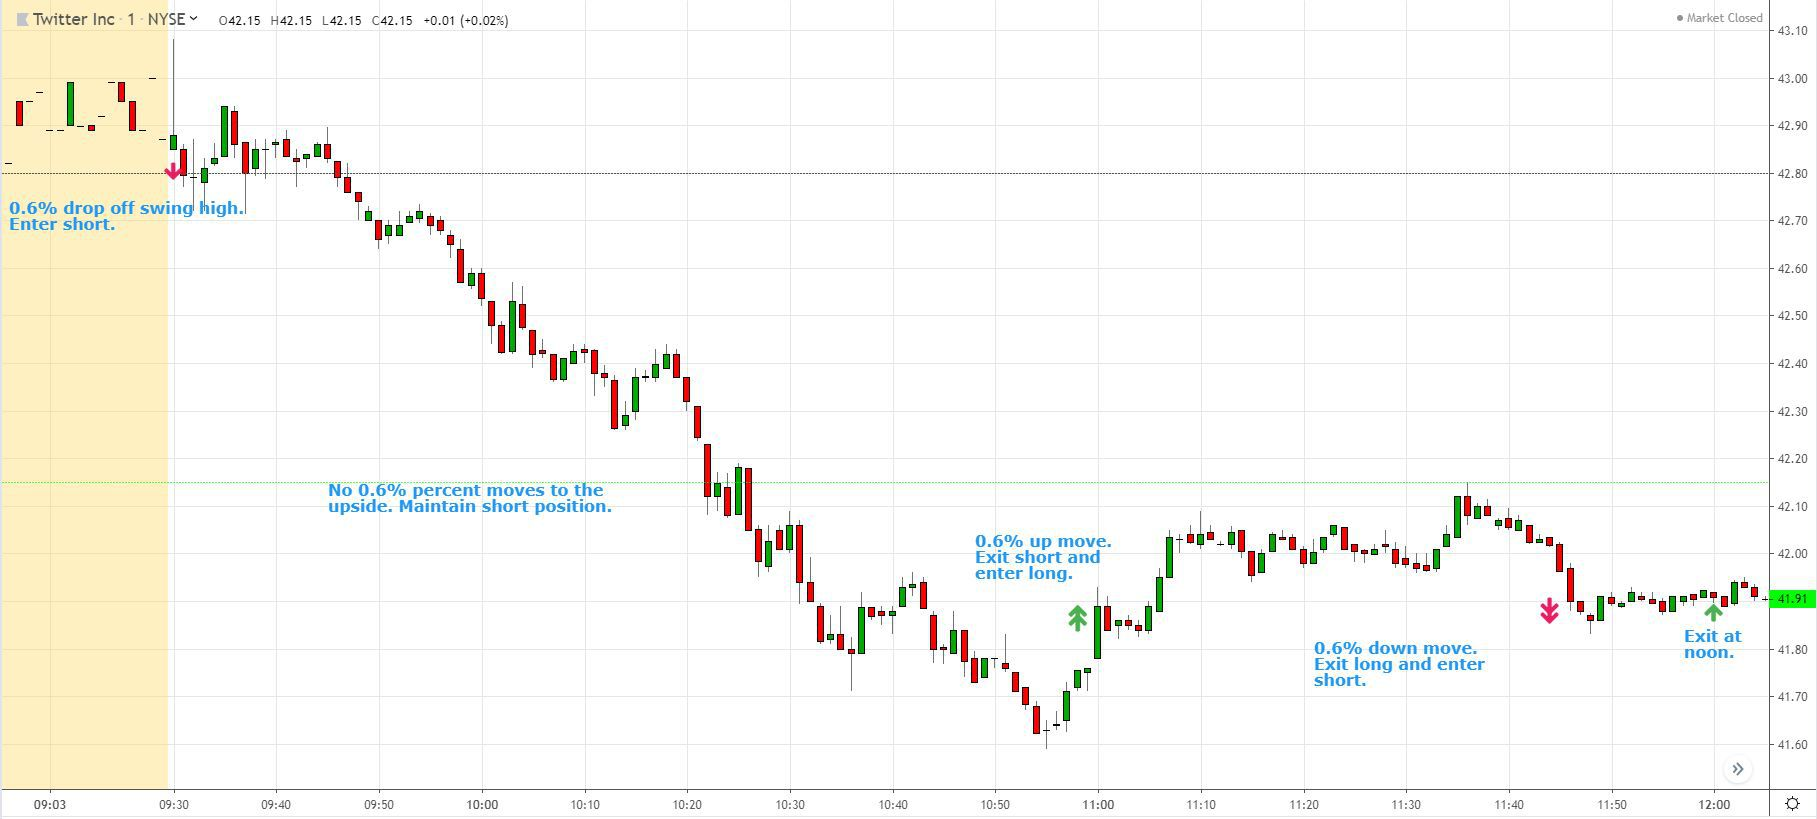 Going offshore to escape the CFTC - Forex Brokers - blogger.com Forex Trading Forum